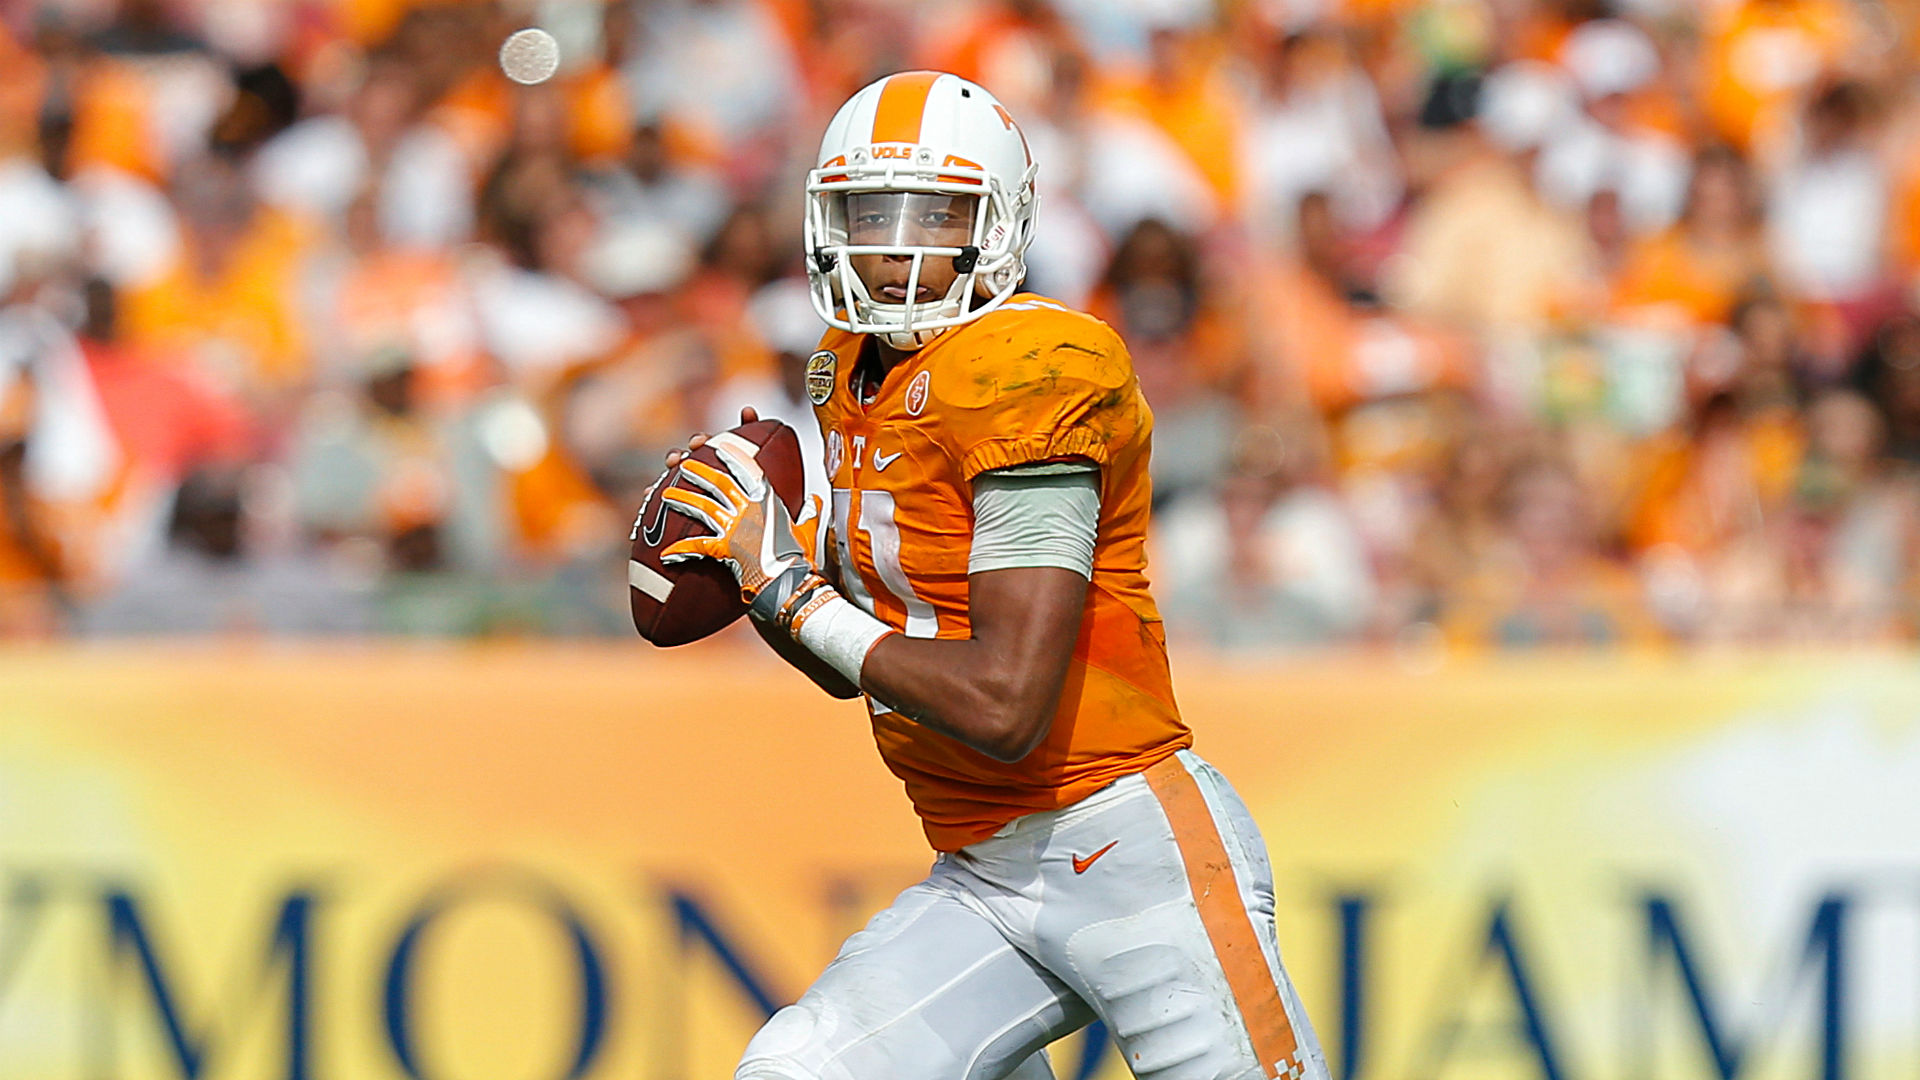 dobbs-joshua-92216-usnews-getty-ftr